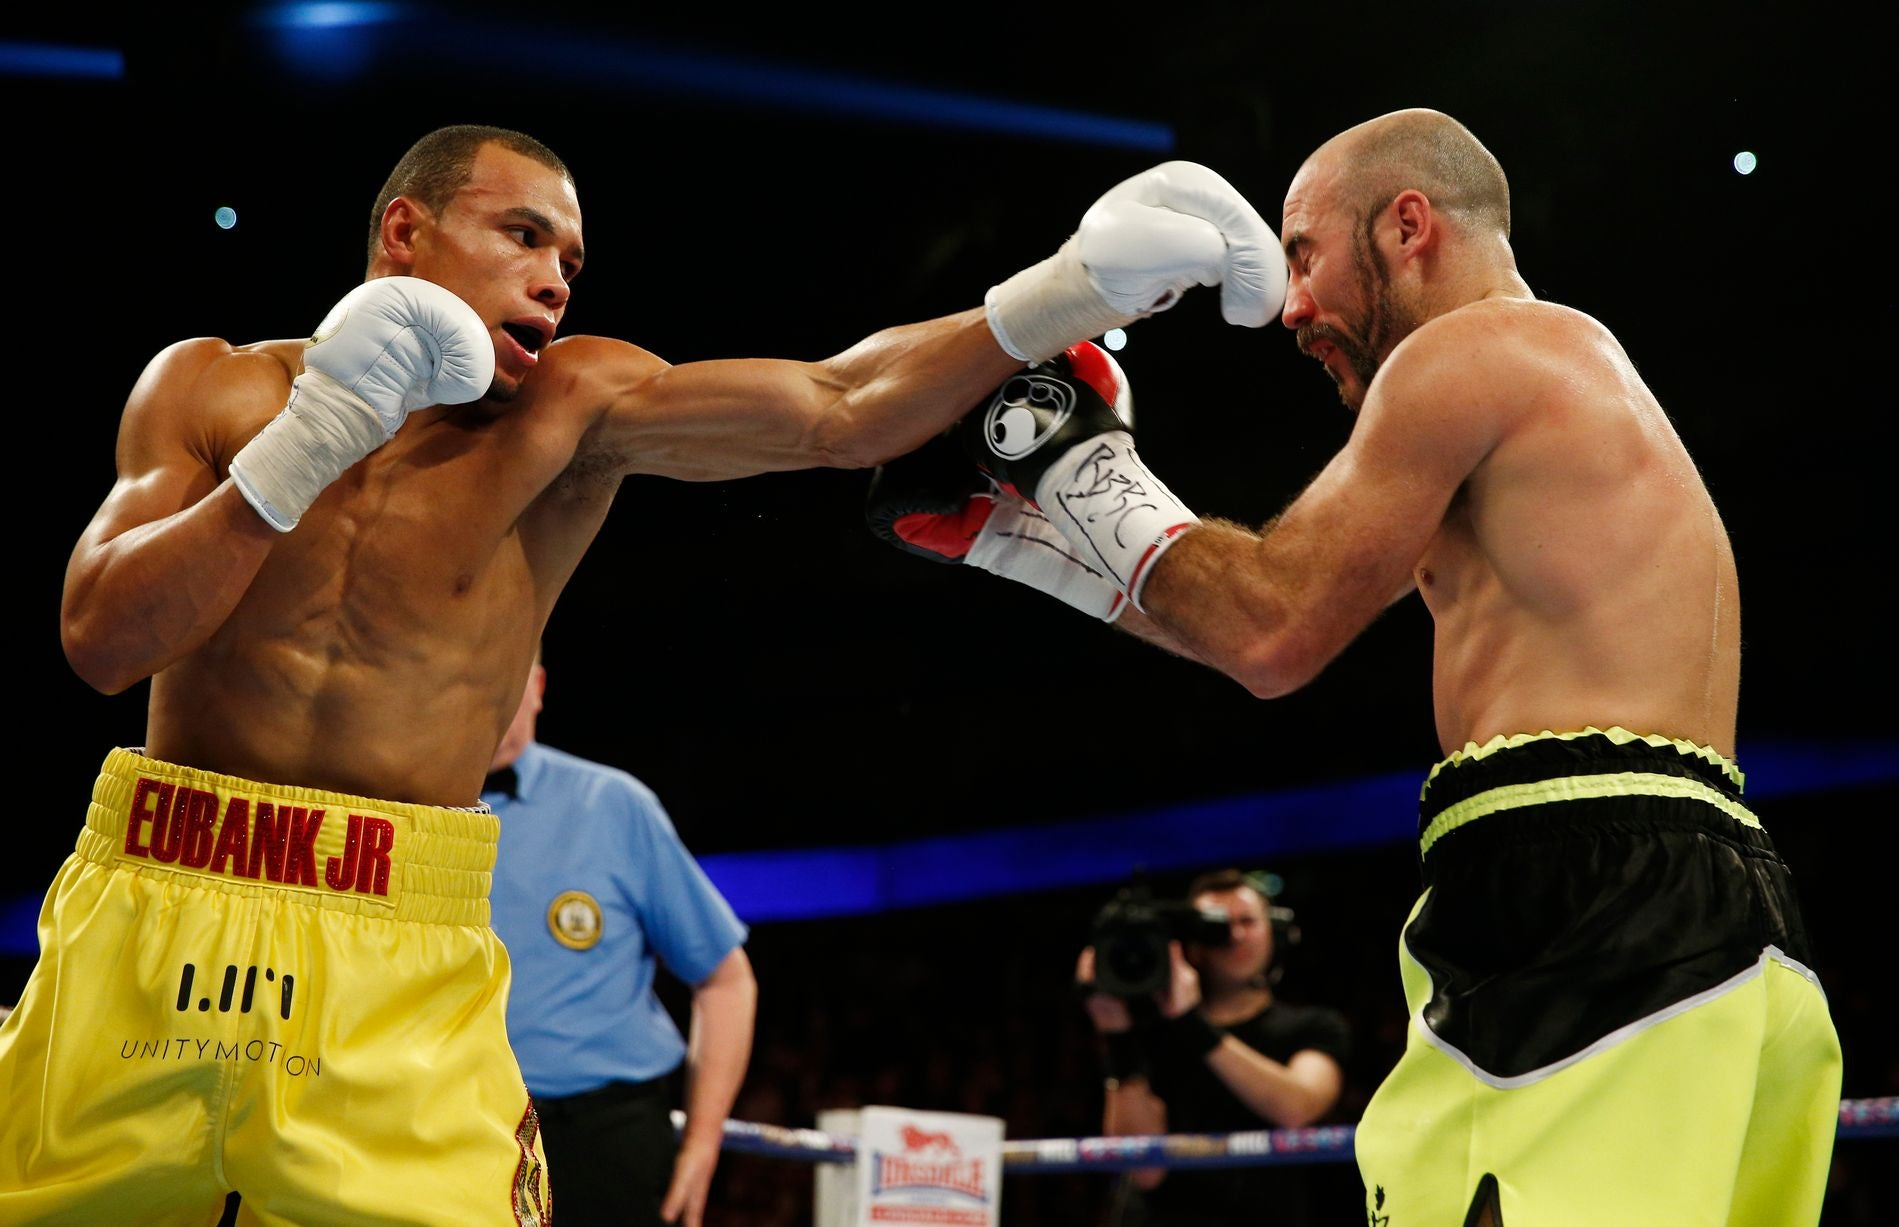 Chris Eubank Jr Vs Gary O'Sullivan